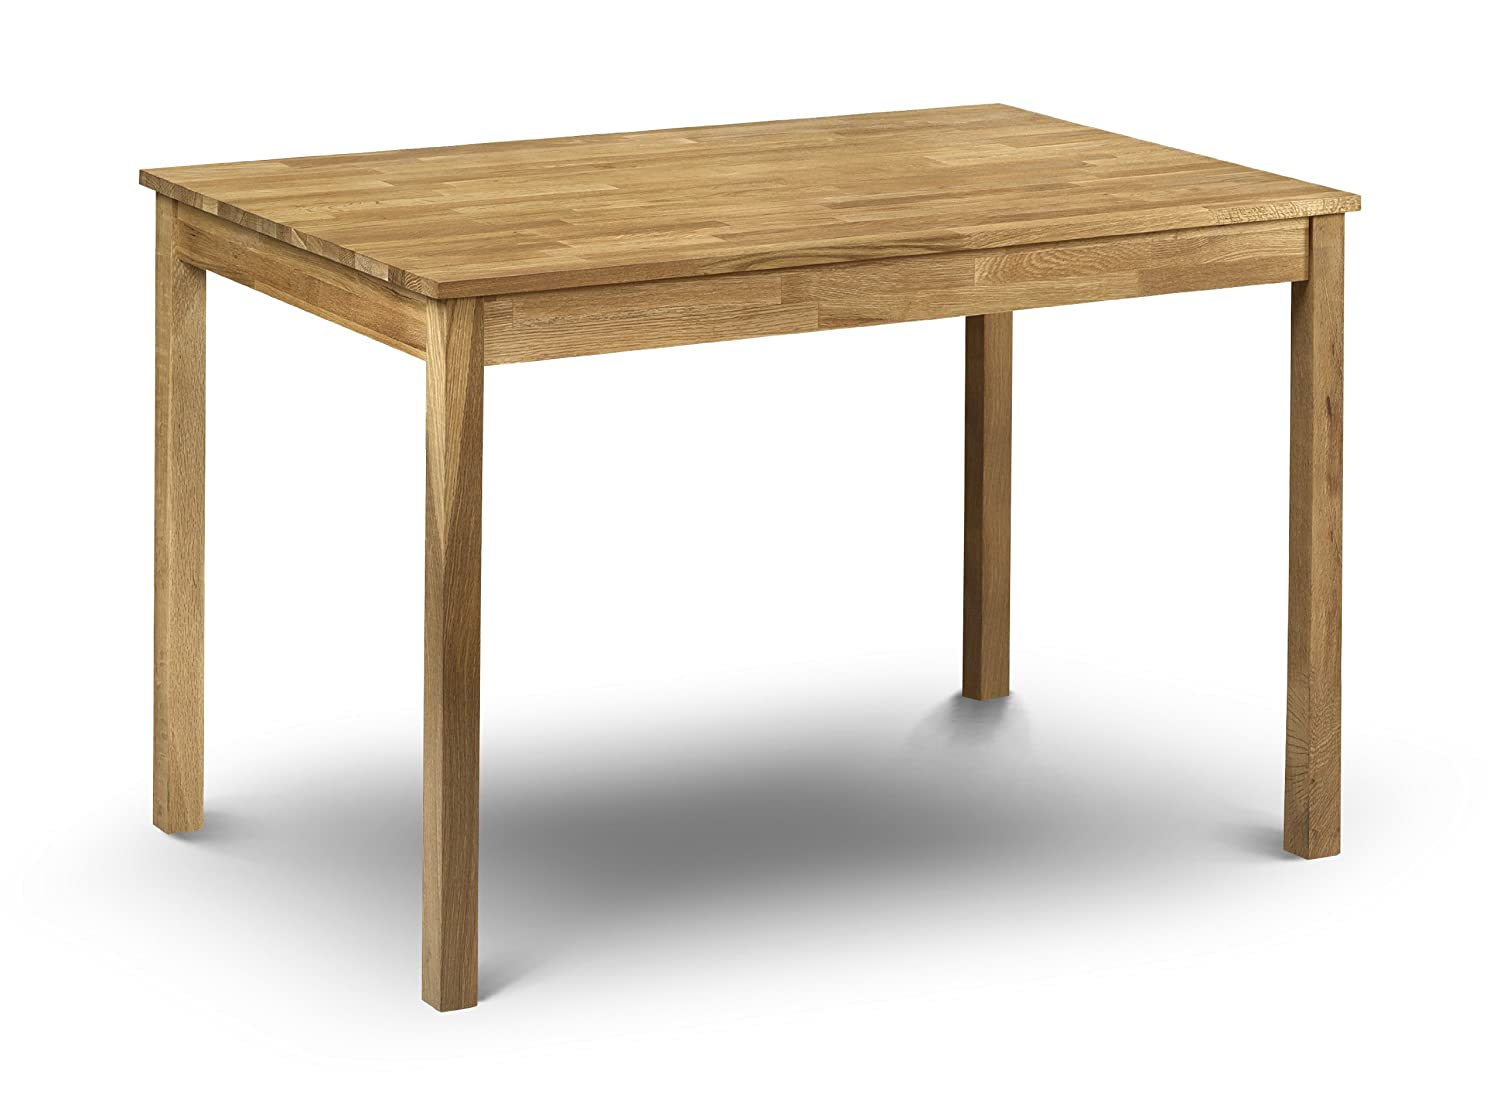 Julian Bowen Coxmoor Solid Oak Rectangular Dining Table, Oak Coxmoor Oak Dining Table